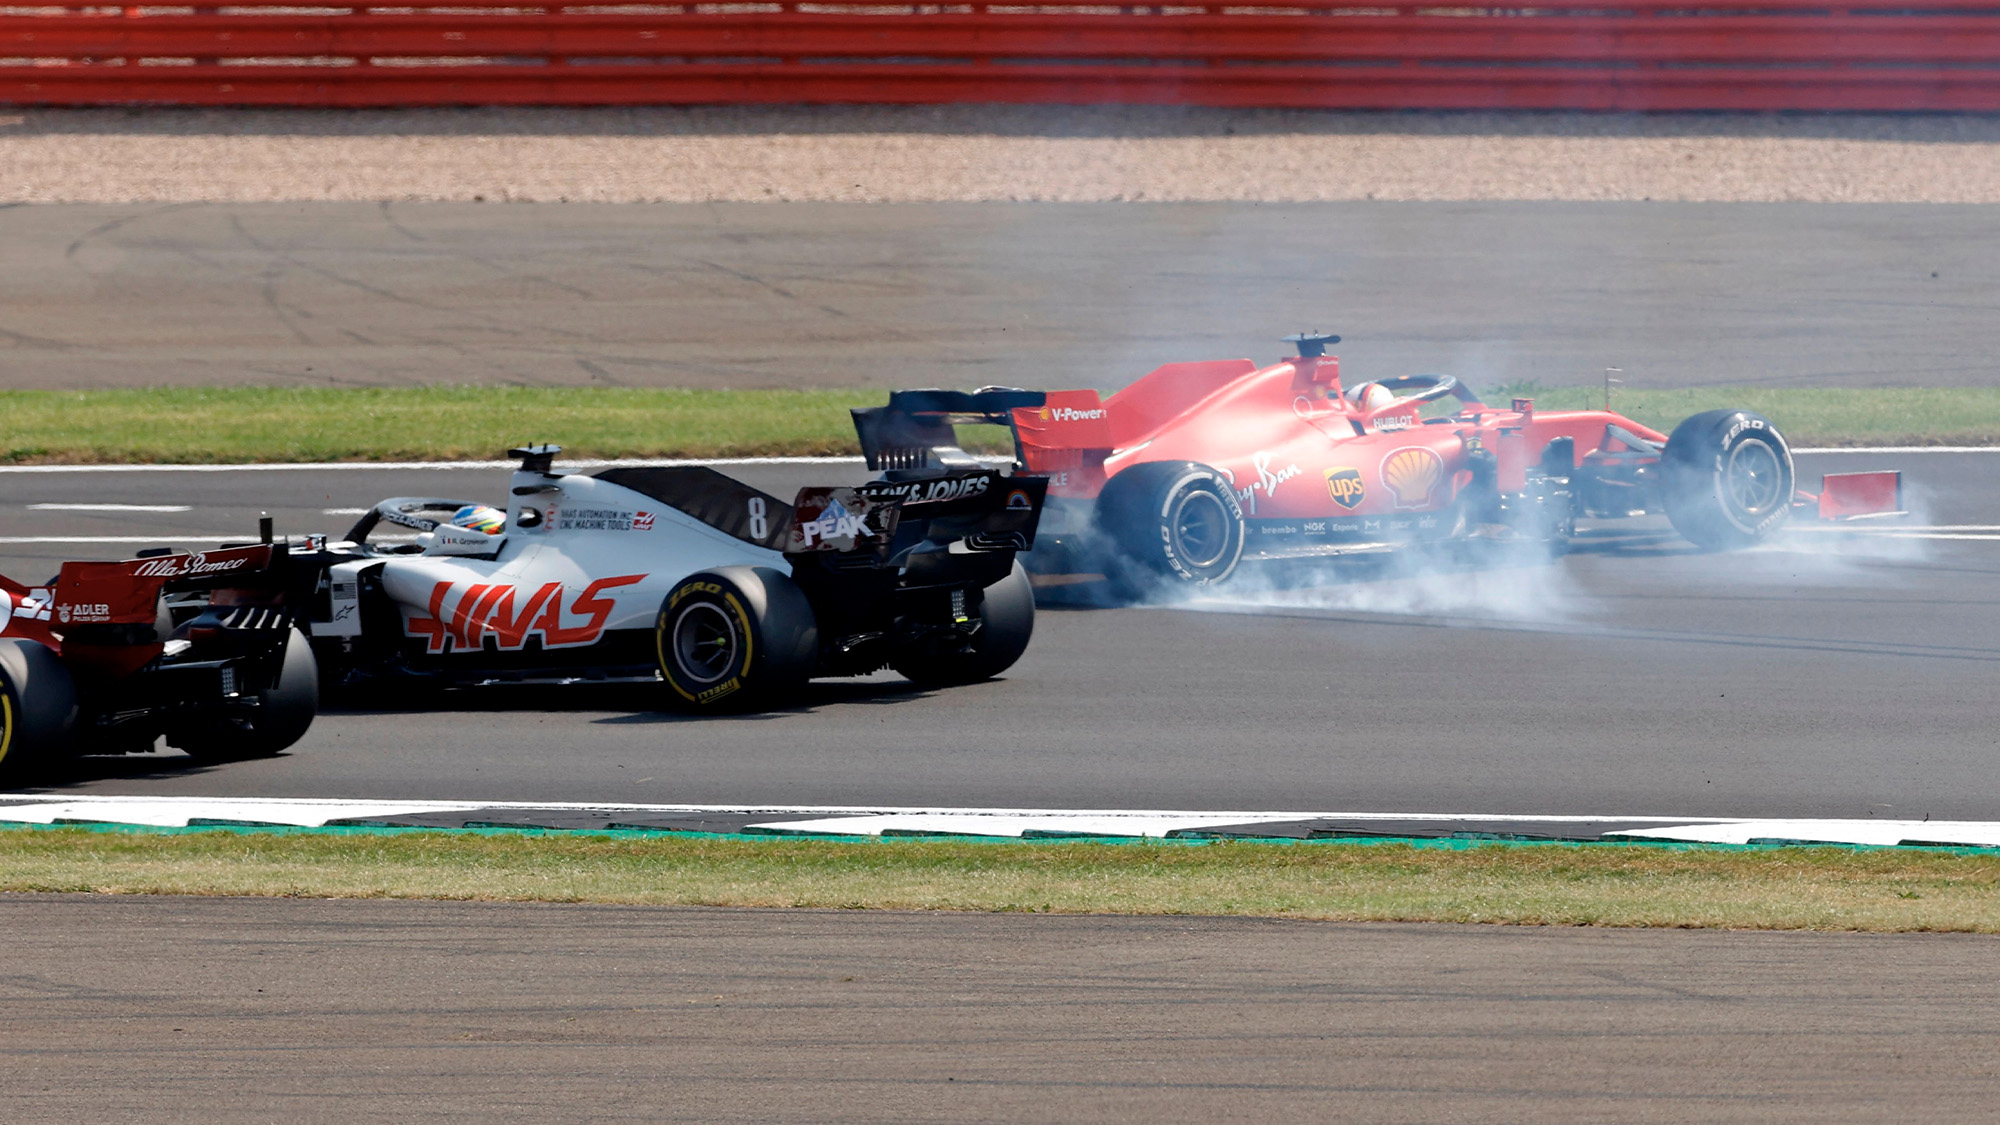 Sebastian Vettel spins at the start of the 2020 D1 70th Anniversary Grand Prix at Silverstone